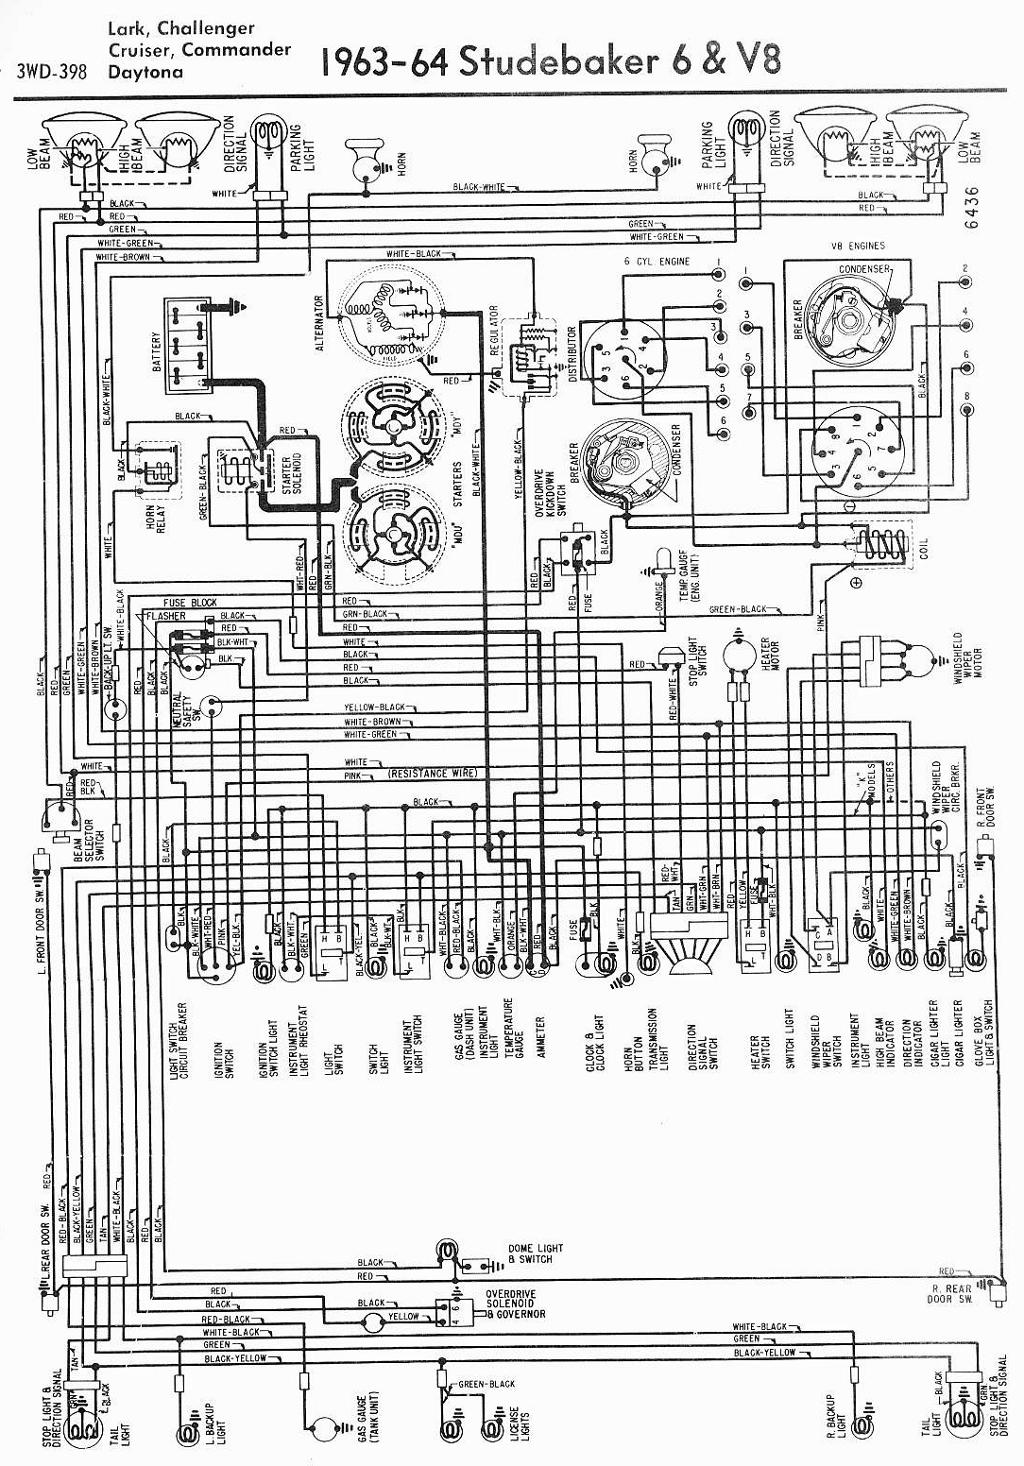 1951 studebaker wiring diagram schematic diagrams rh ogmconsulting co